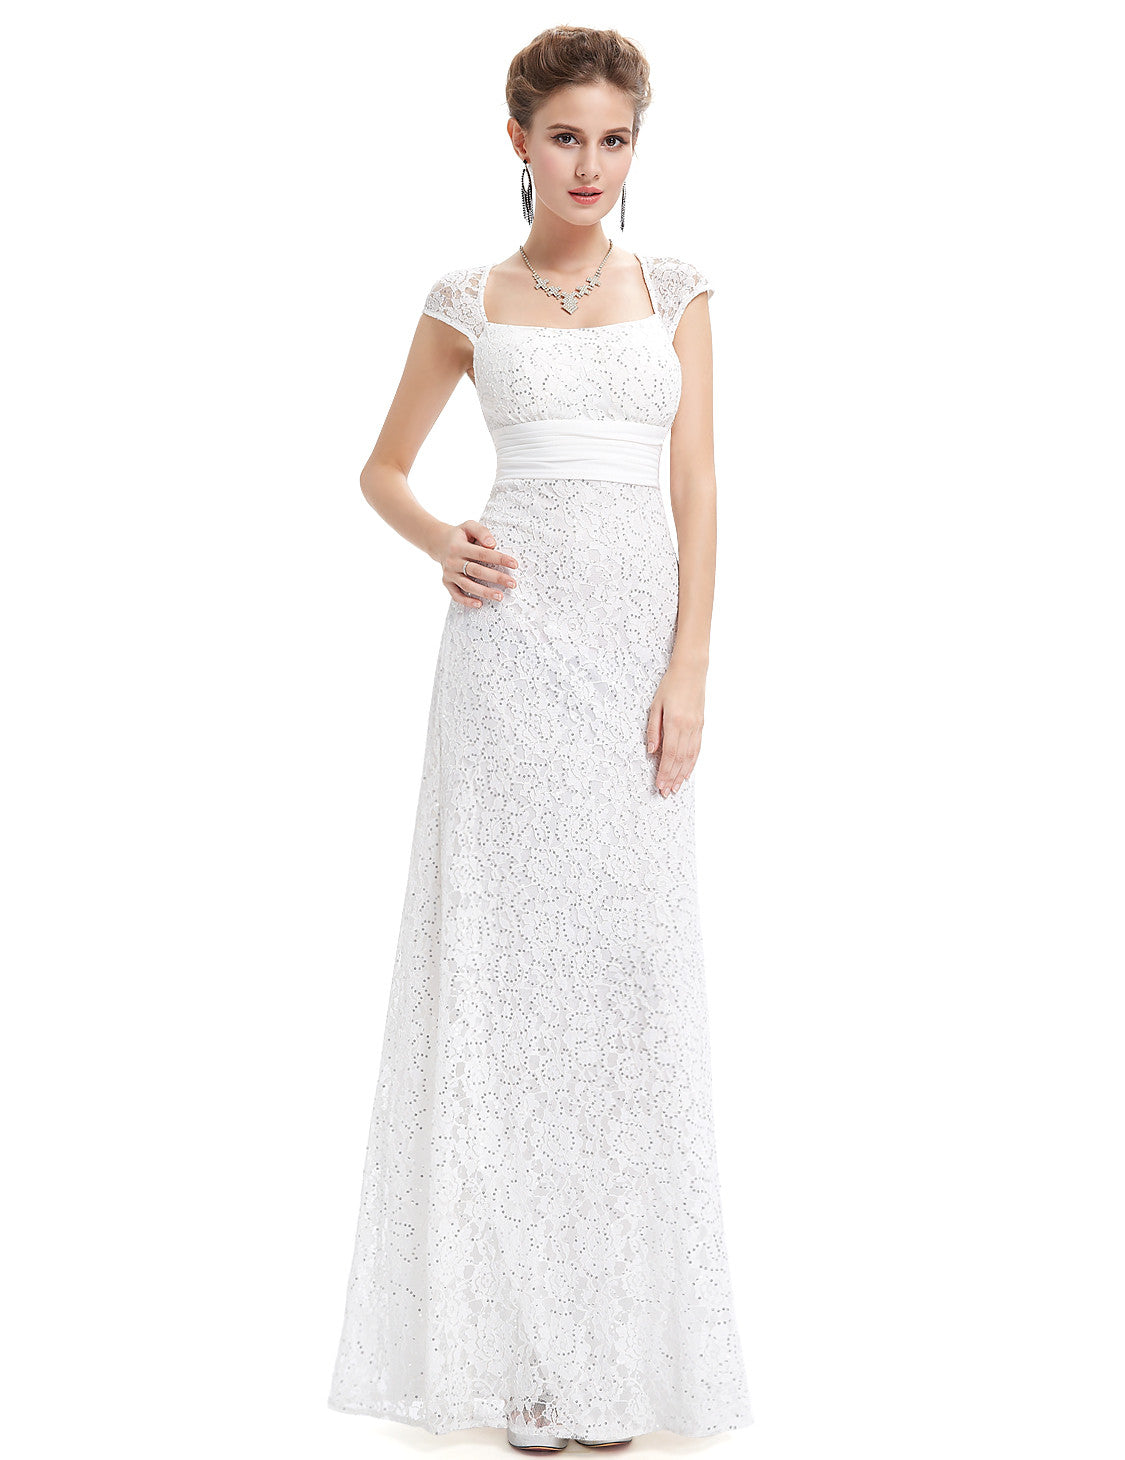 White Elegant Lacy Long Evening Party Dress